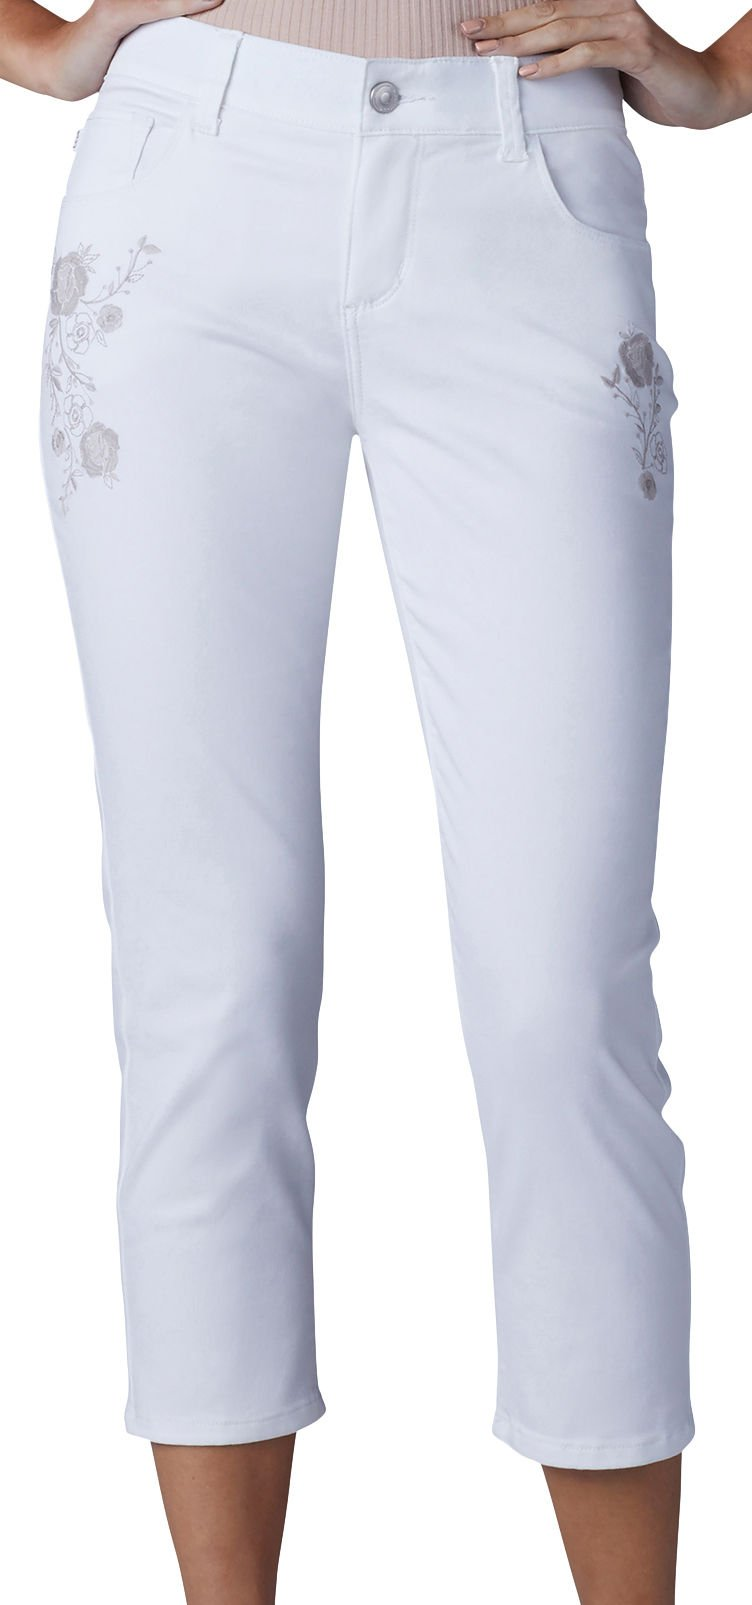 LEE Women's Petite Modern Series Total Freedom Arleigh Capri Jean, White with Embroidery, 10